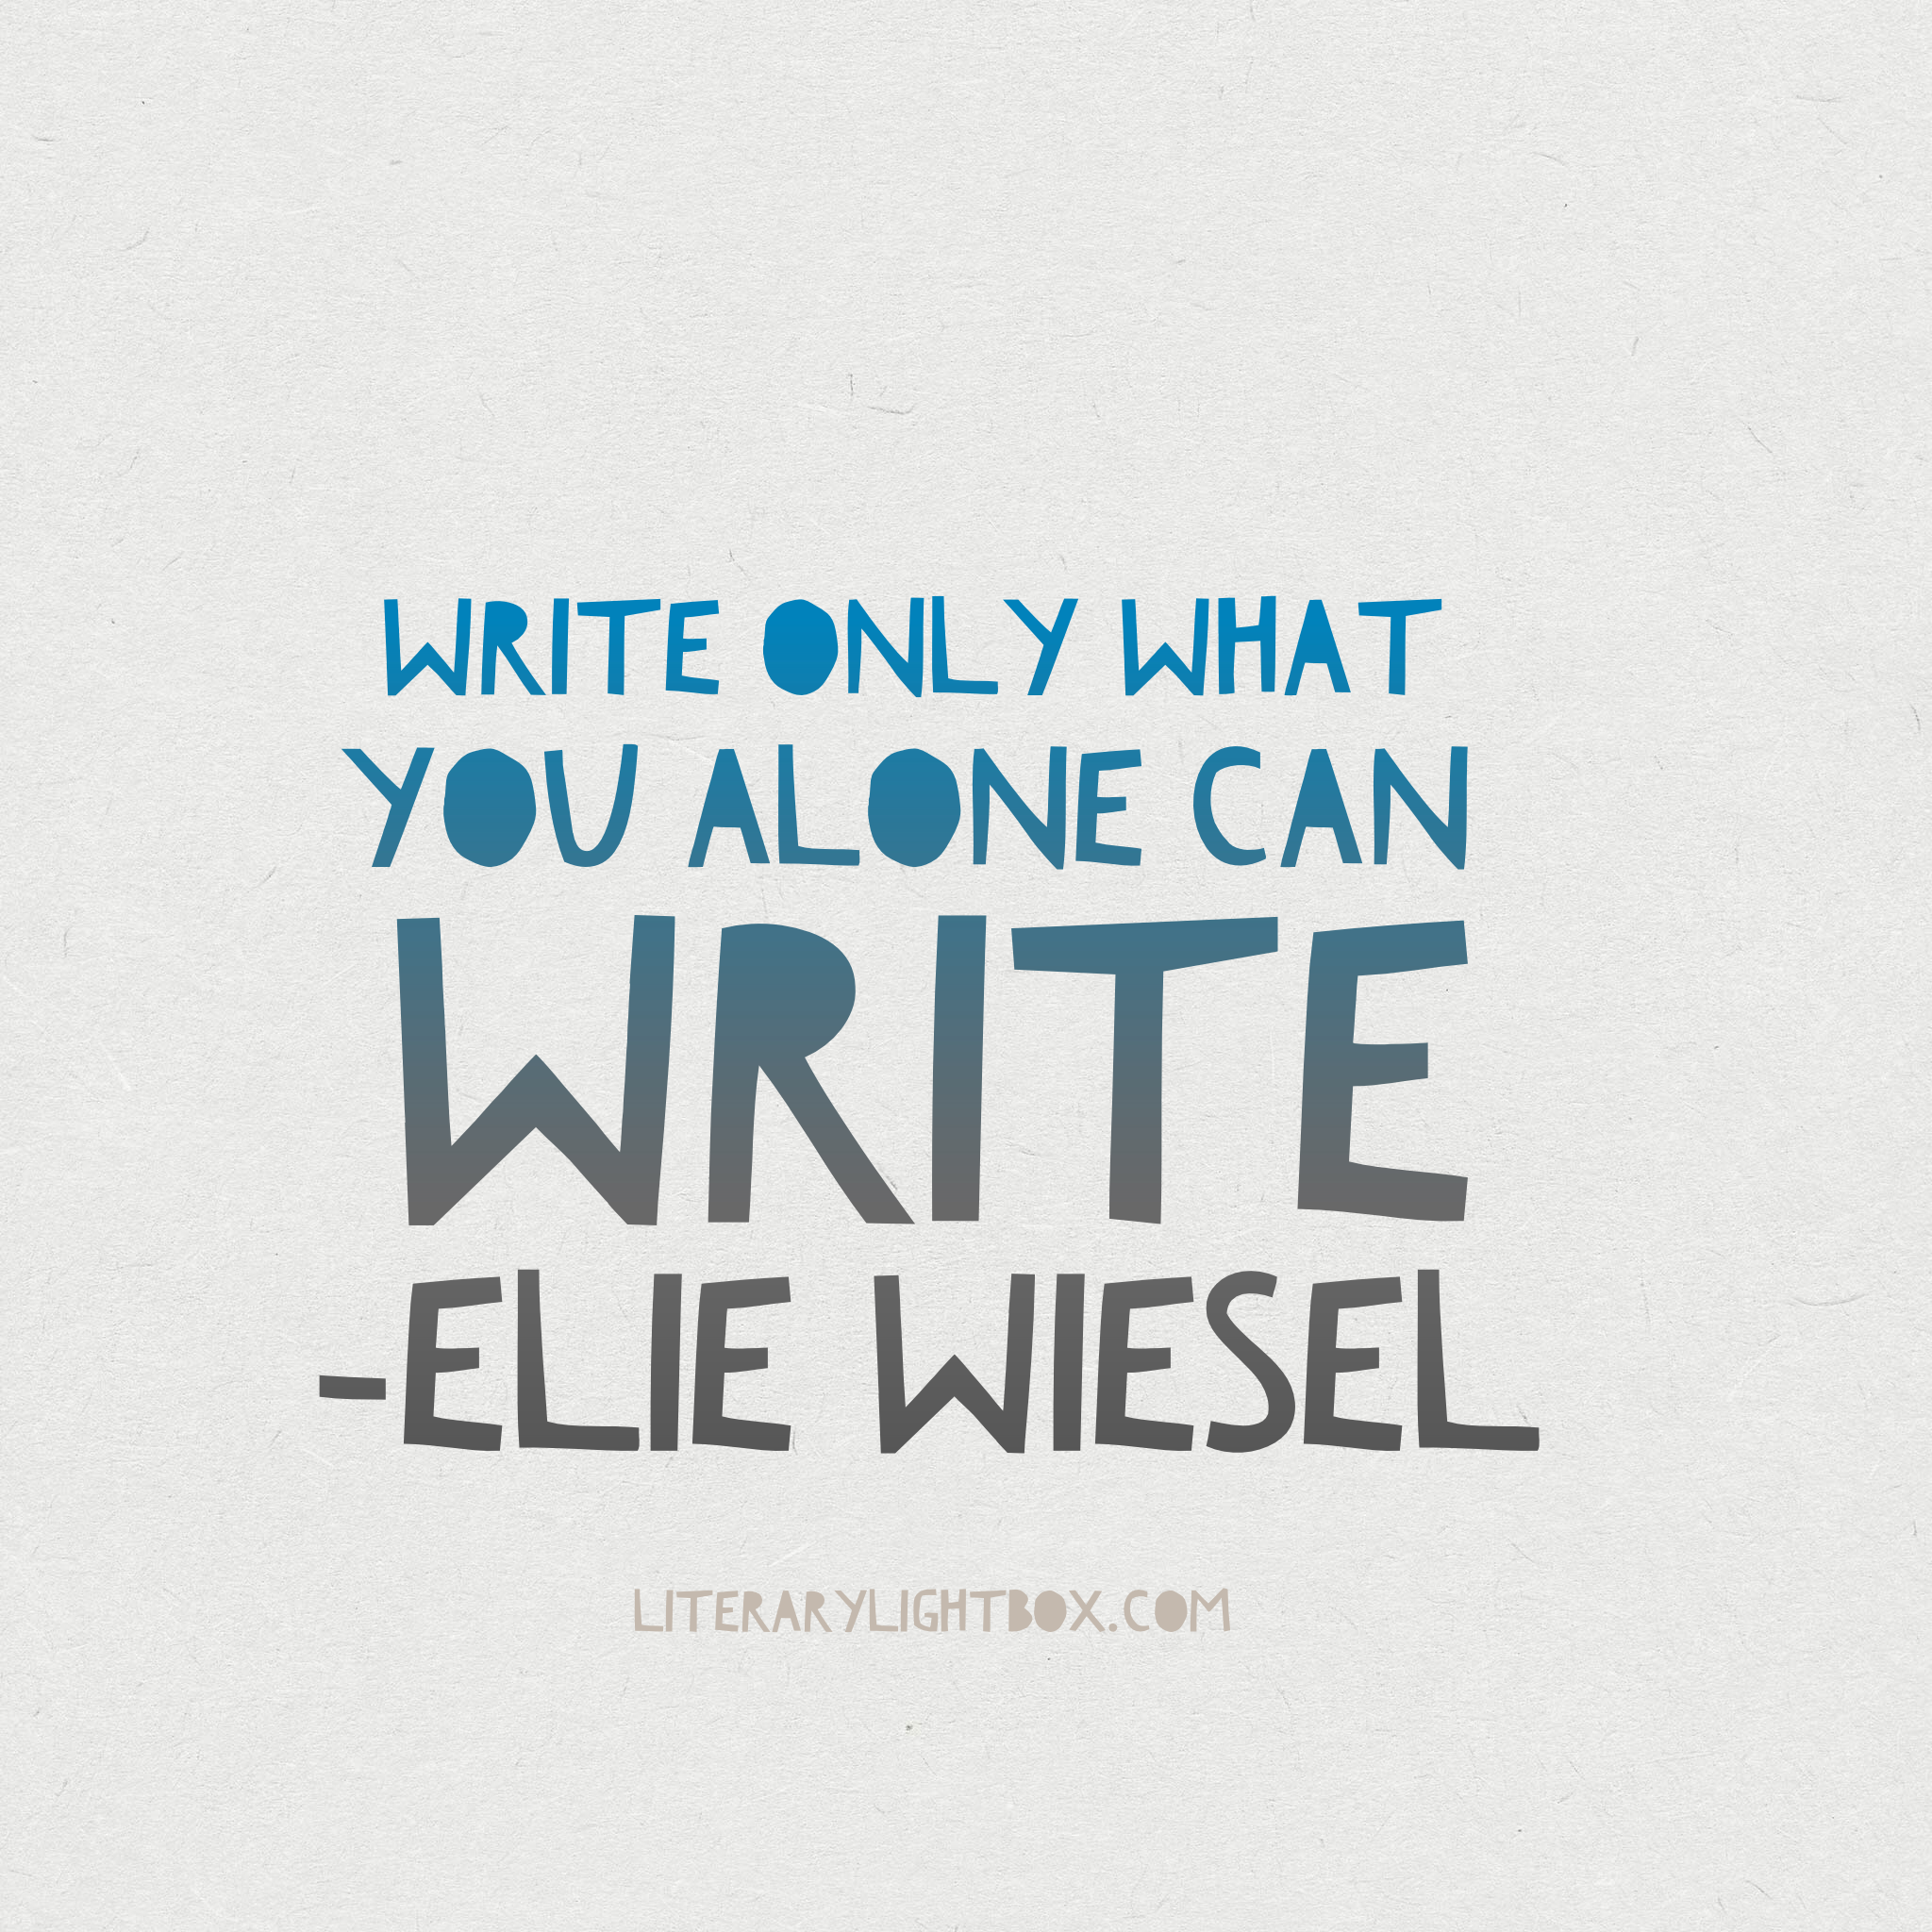 Write Only What You Alone Can Write